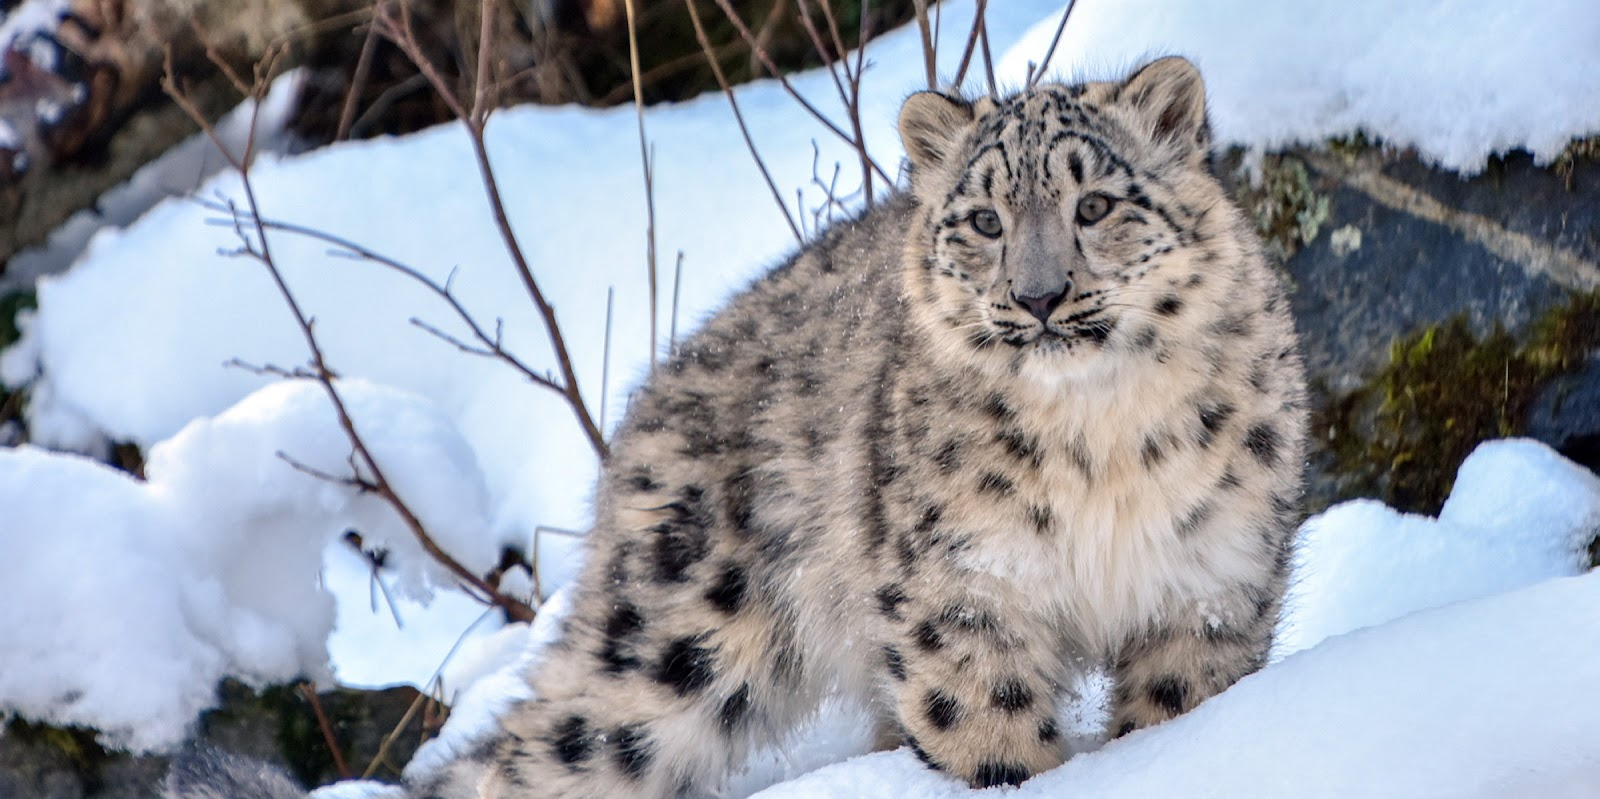 Rare snow leopards spotted near Kazakhstan's Almaty amid COVID-19 ...